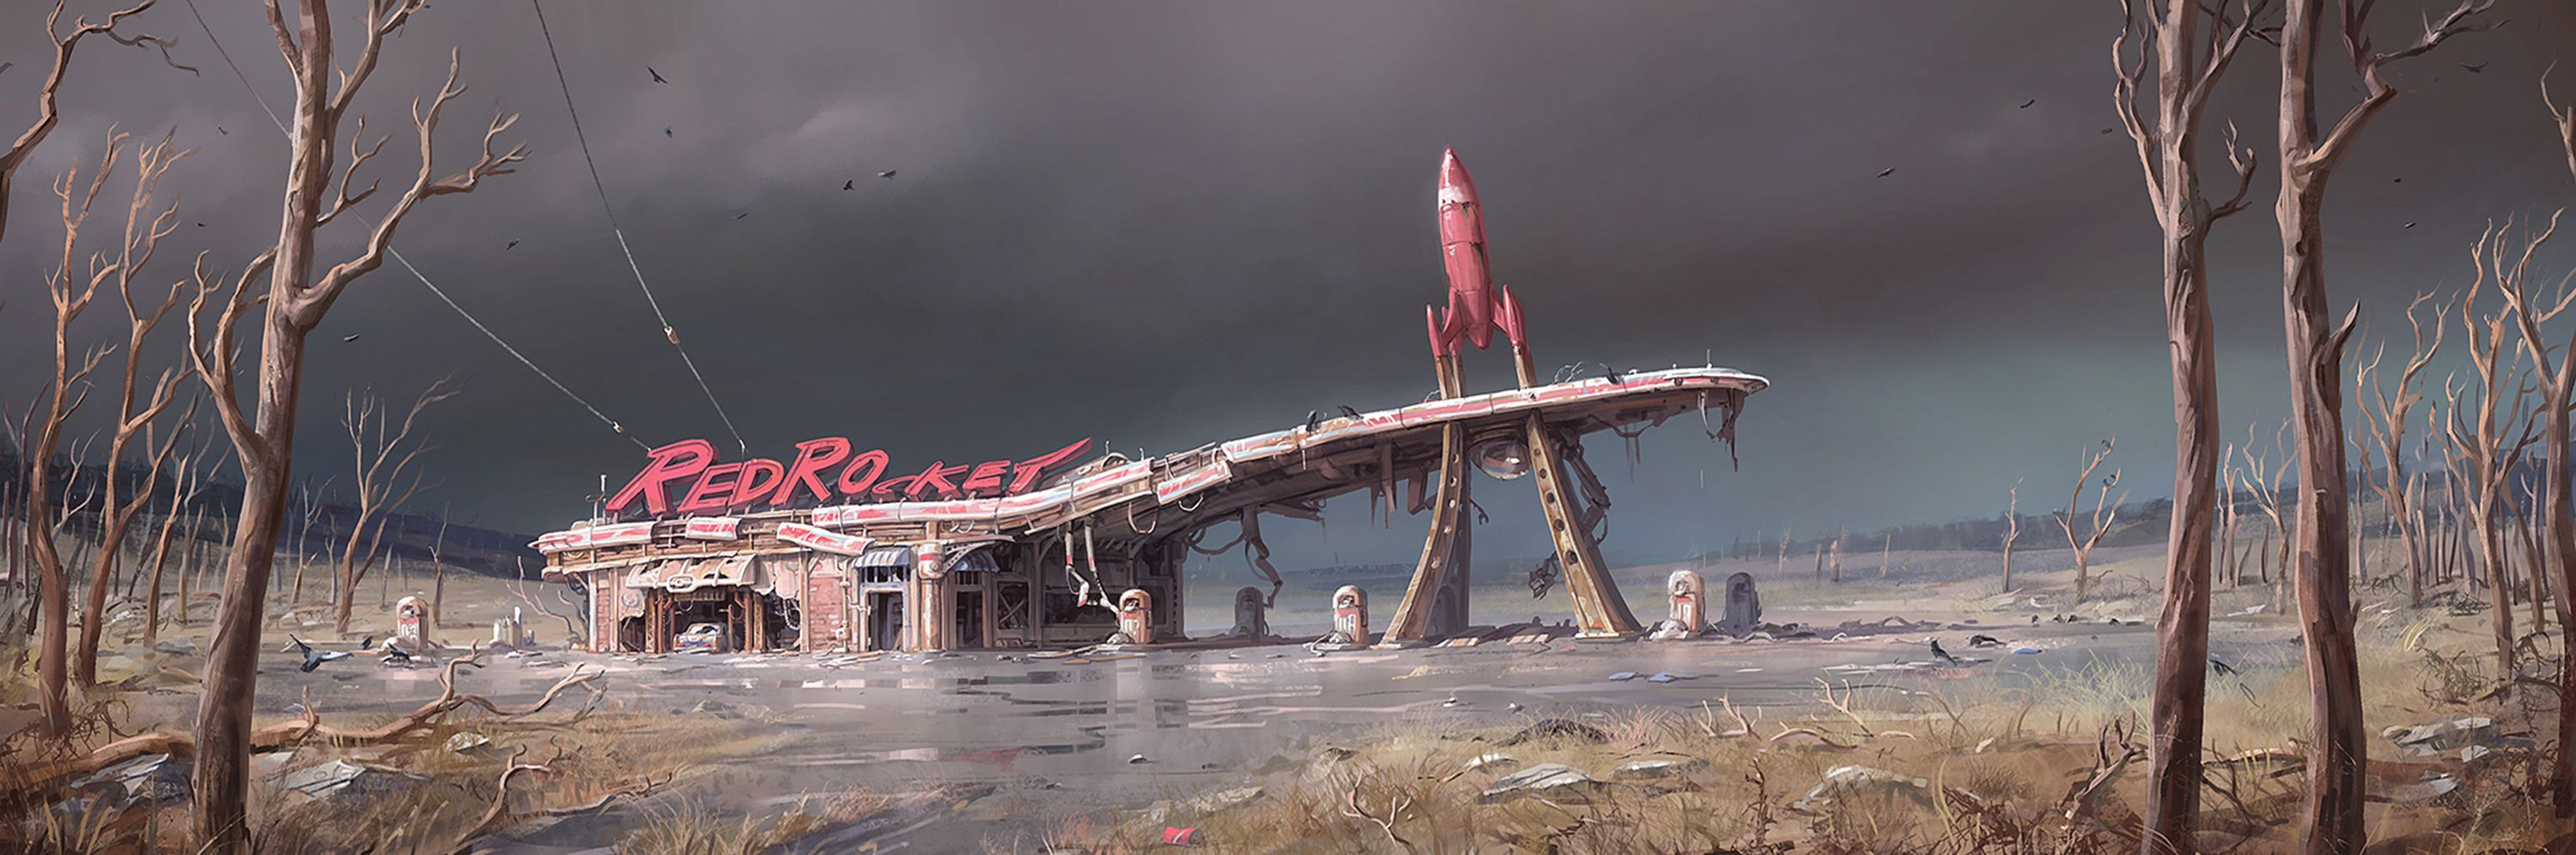 Fallout 4s concept art is wallpaper worthy Polygon 3000x996